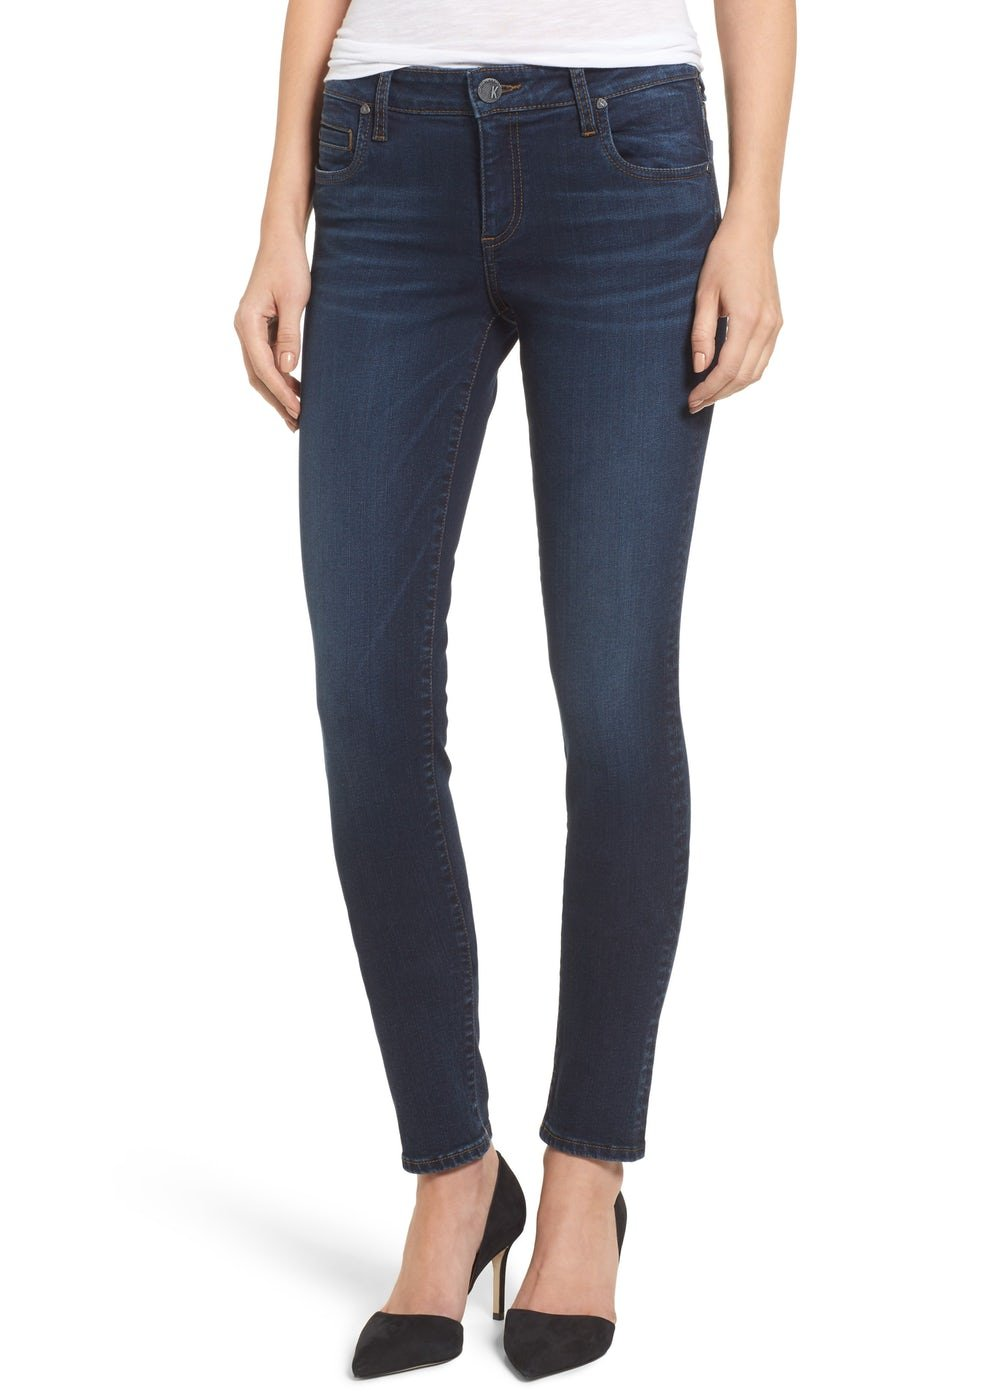 KUT from the Kloth Women's Diana Skinny in Model w/ Dark Stone Base Wash Model/Dark Stone Base Wash Jeans